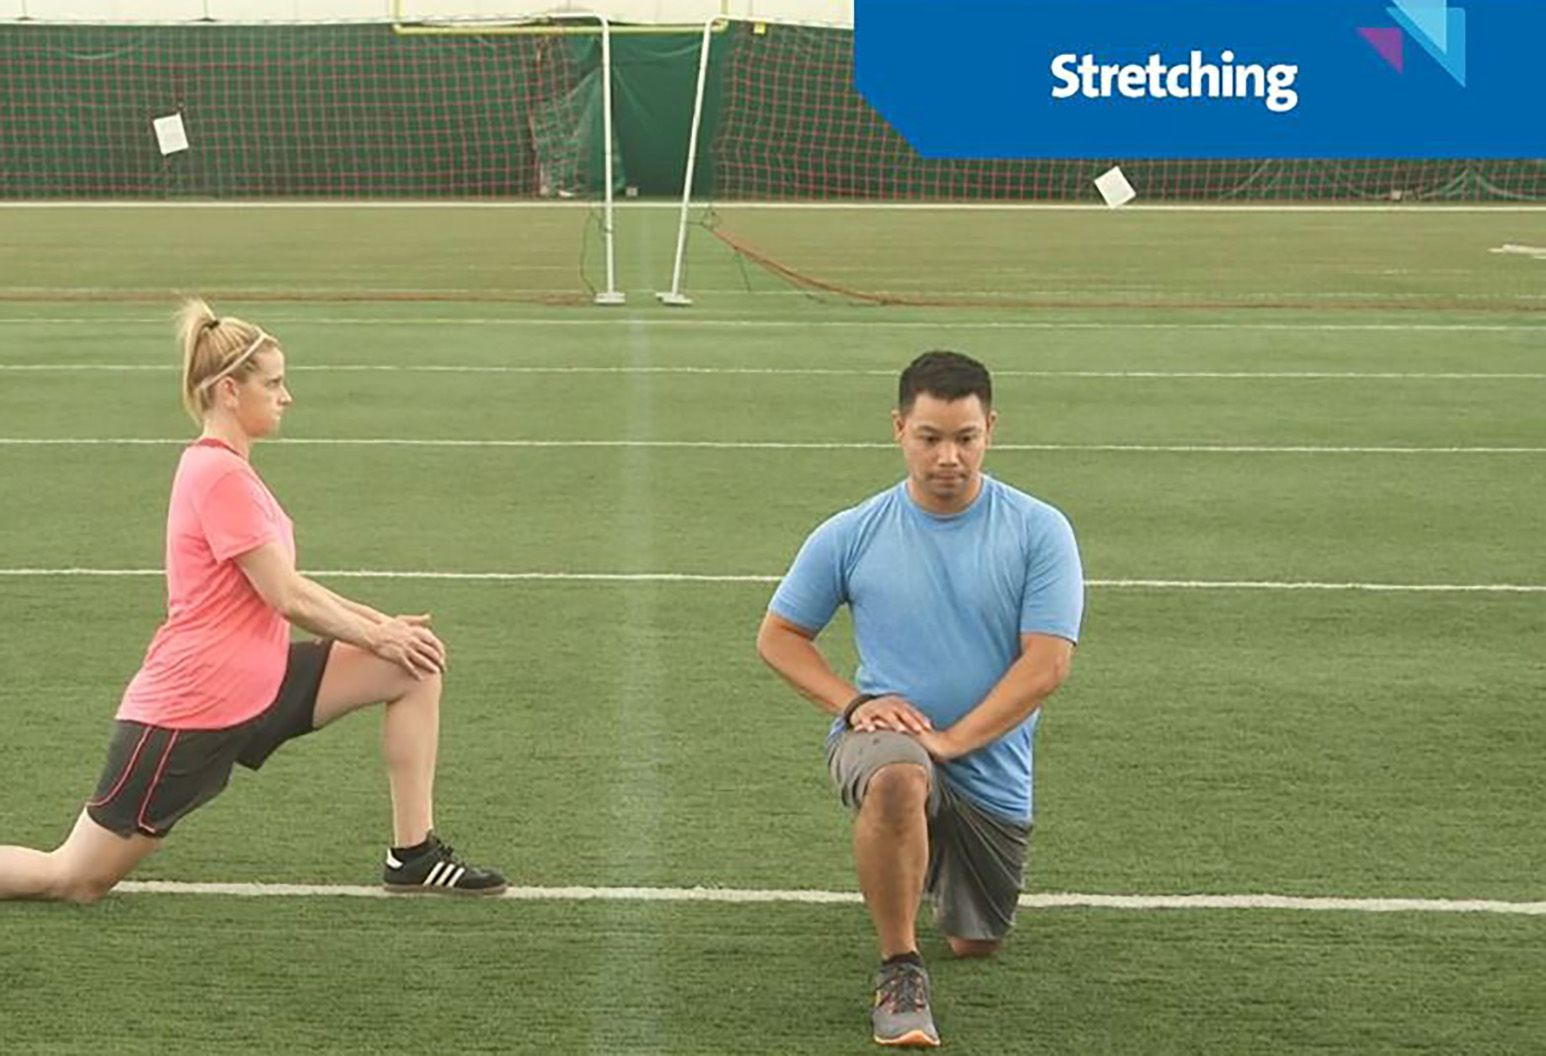 A man and woman stretching out their quad muscles, using each other for support